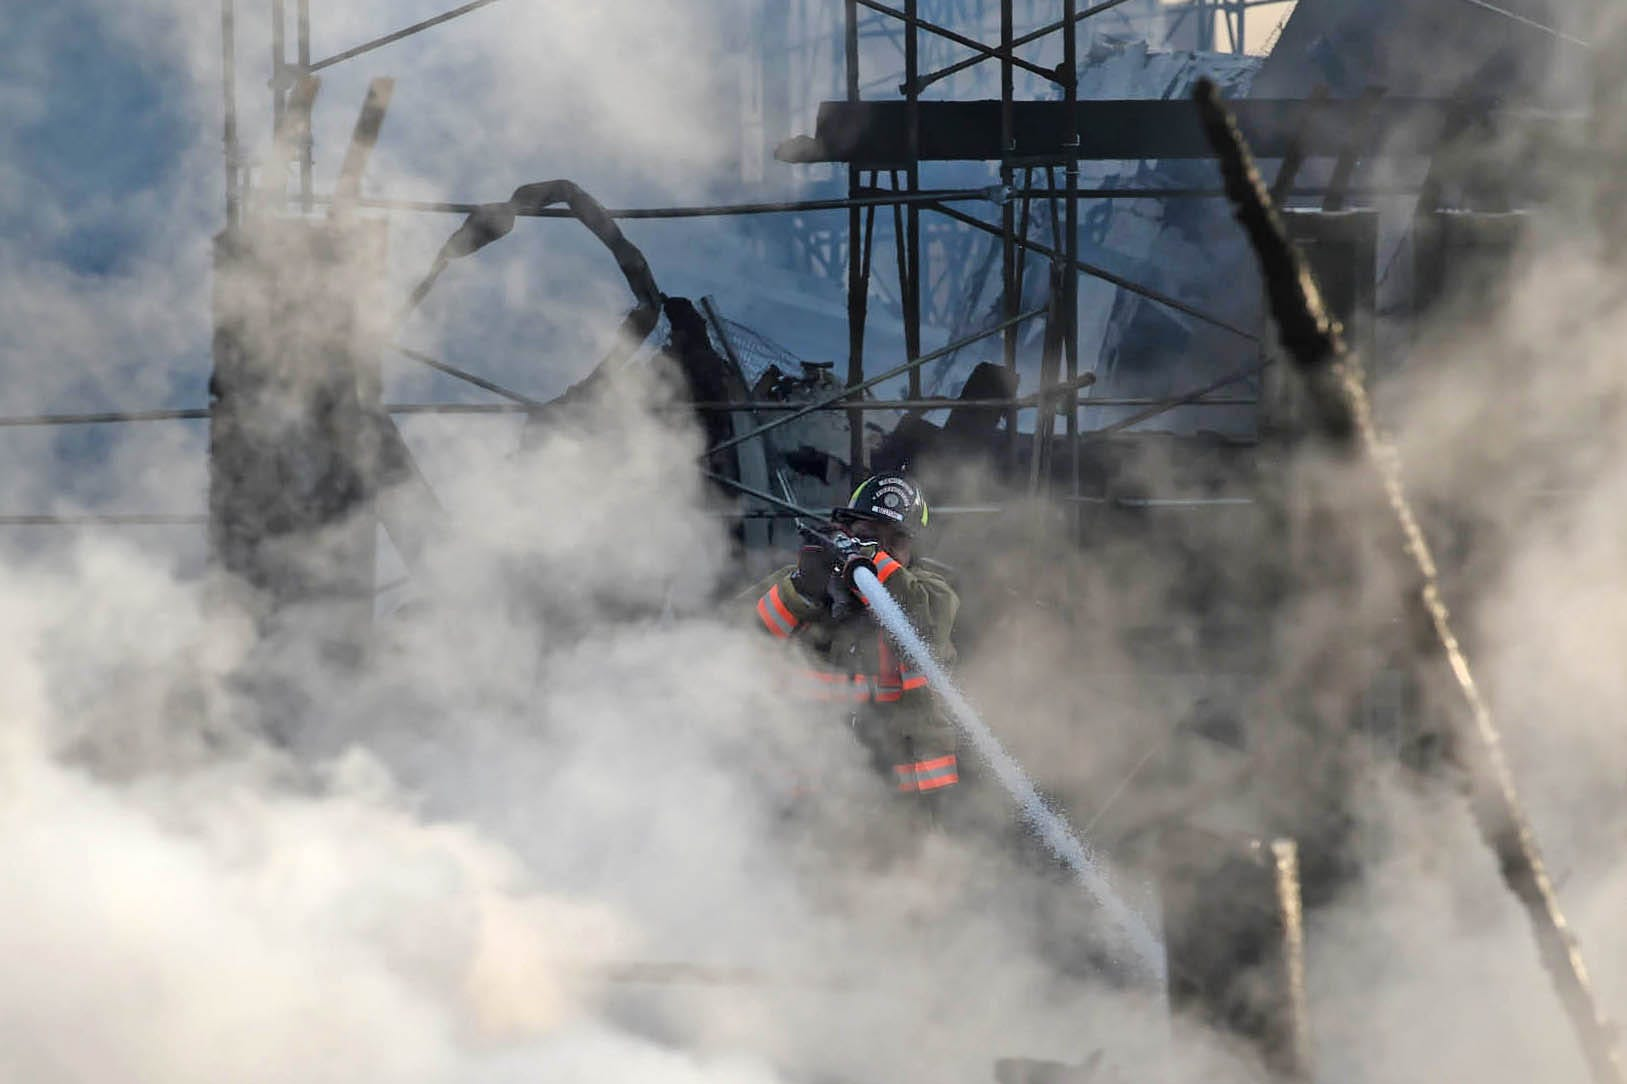 A Reno Firefighter hits a hot spot as they battle fire at a townhome complex under construction in south Reno early in the morning on Thursday July 23, 2020.